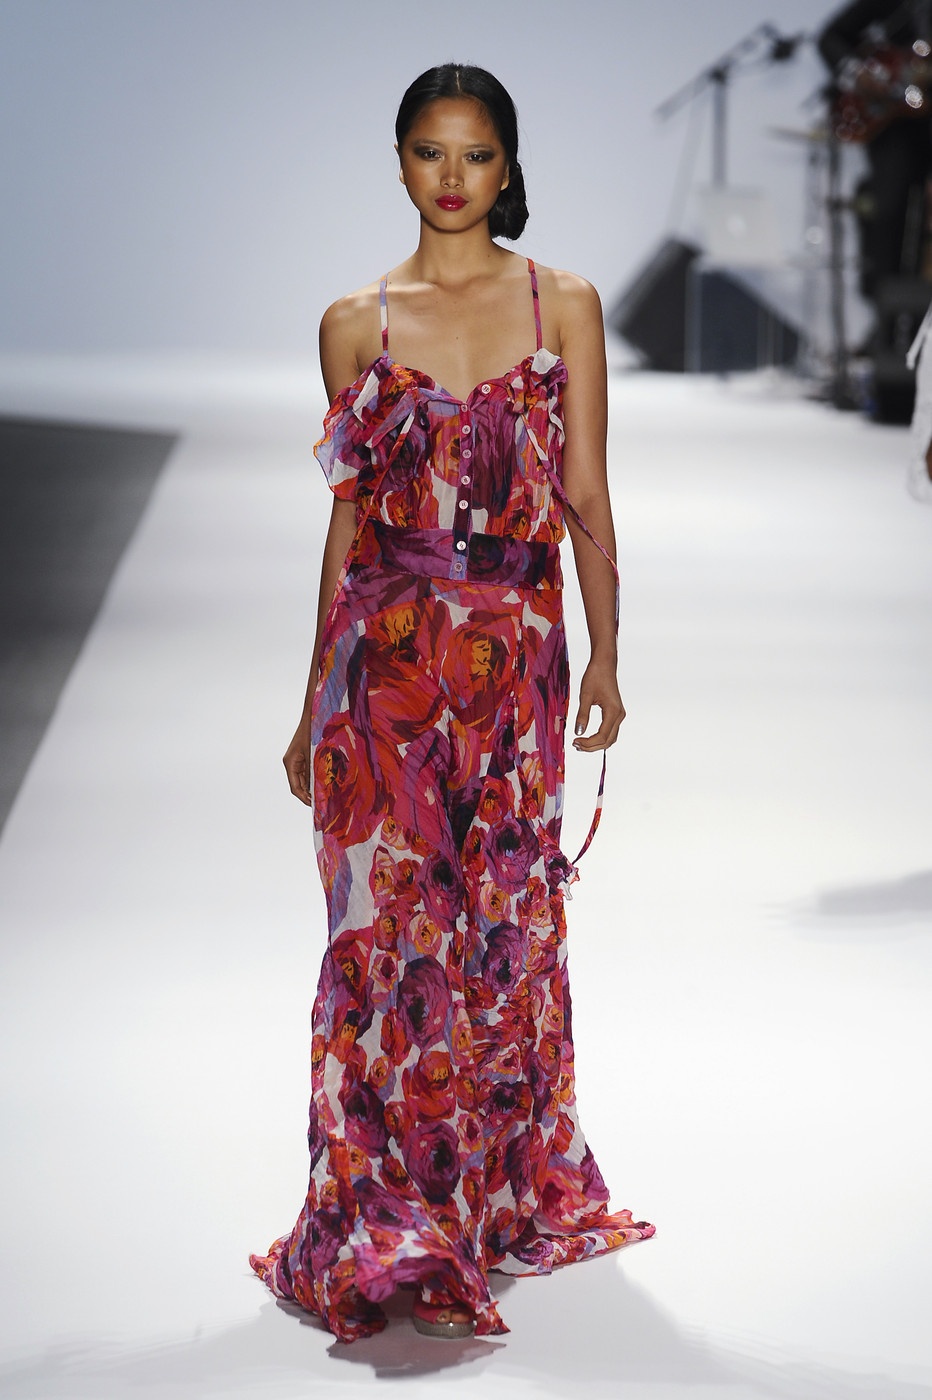 via fashioned by love | Nanette Lepore Spring/Summer 2011 | floral trend